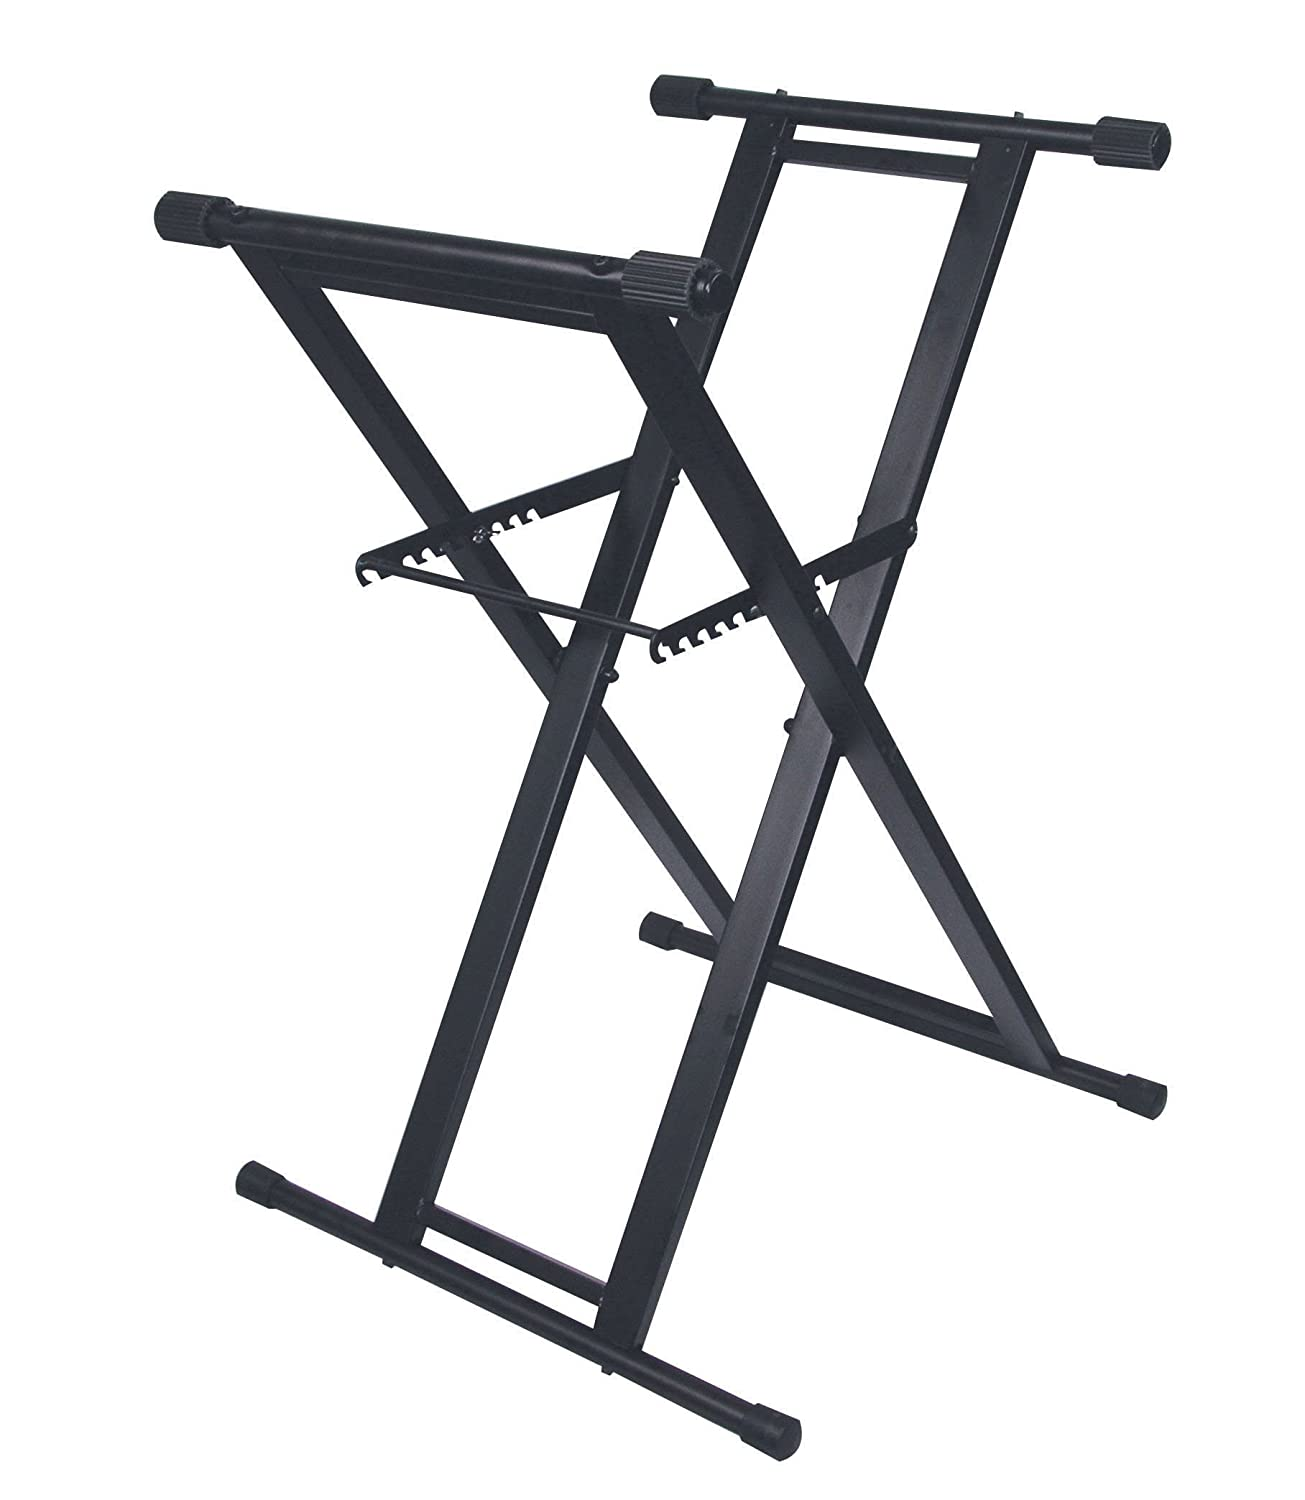 Odyssey LTBXS X-Stand: Double Braced Dj Coffin and Keyboard Stand Odyssey Innovative Designs